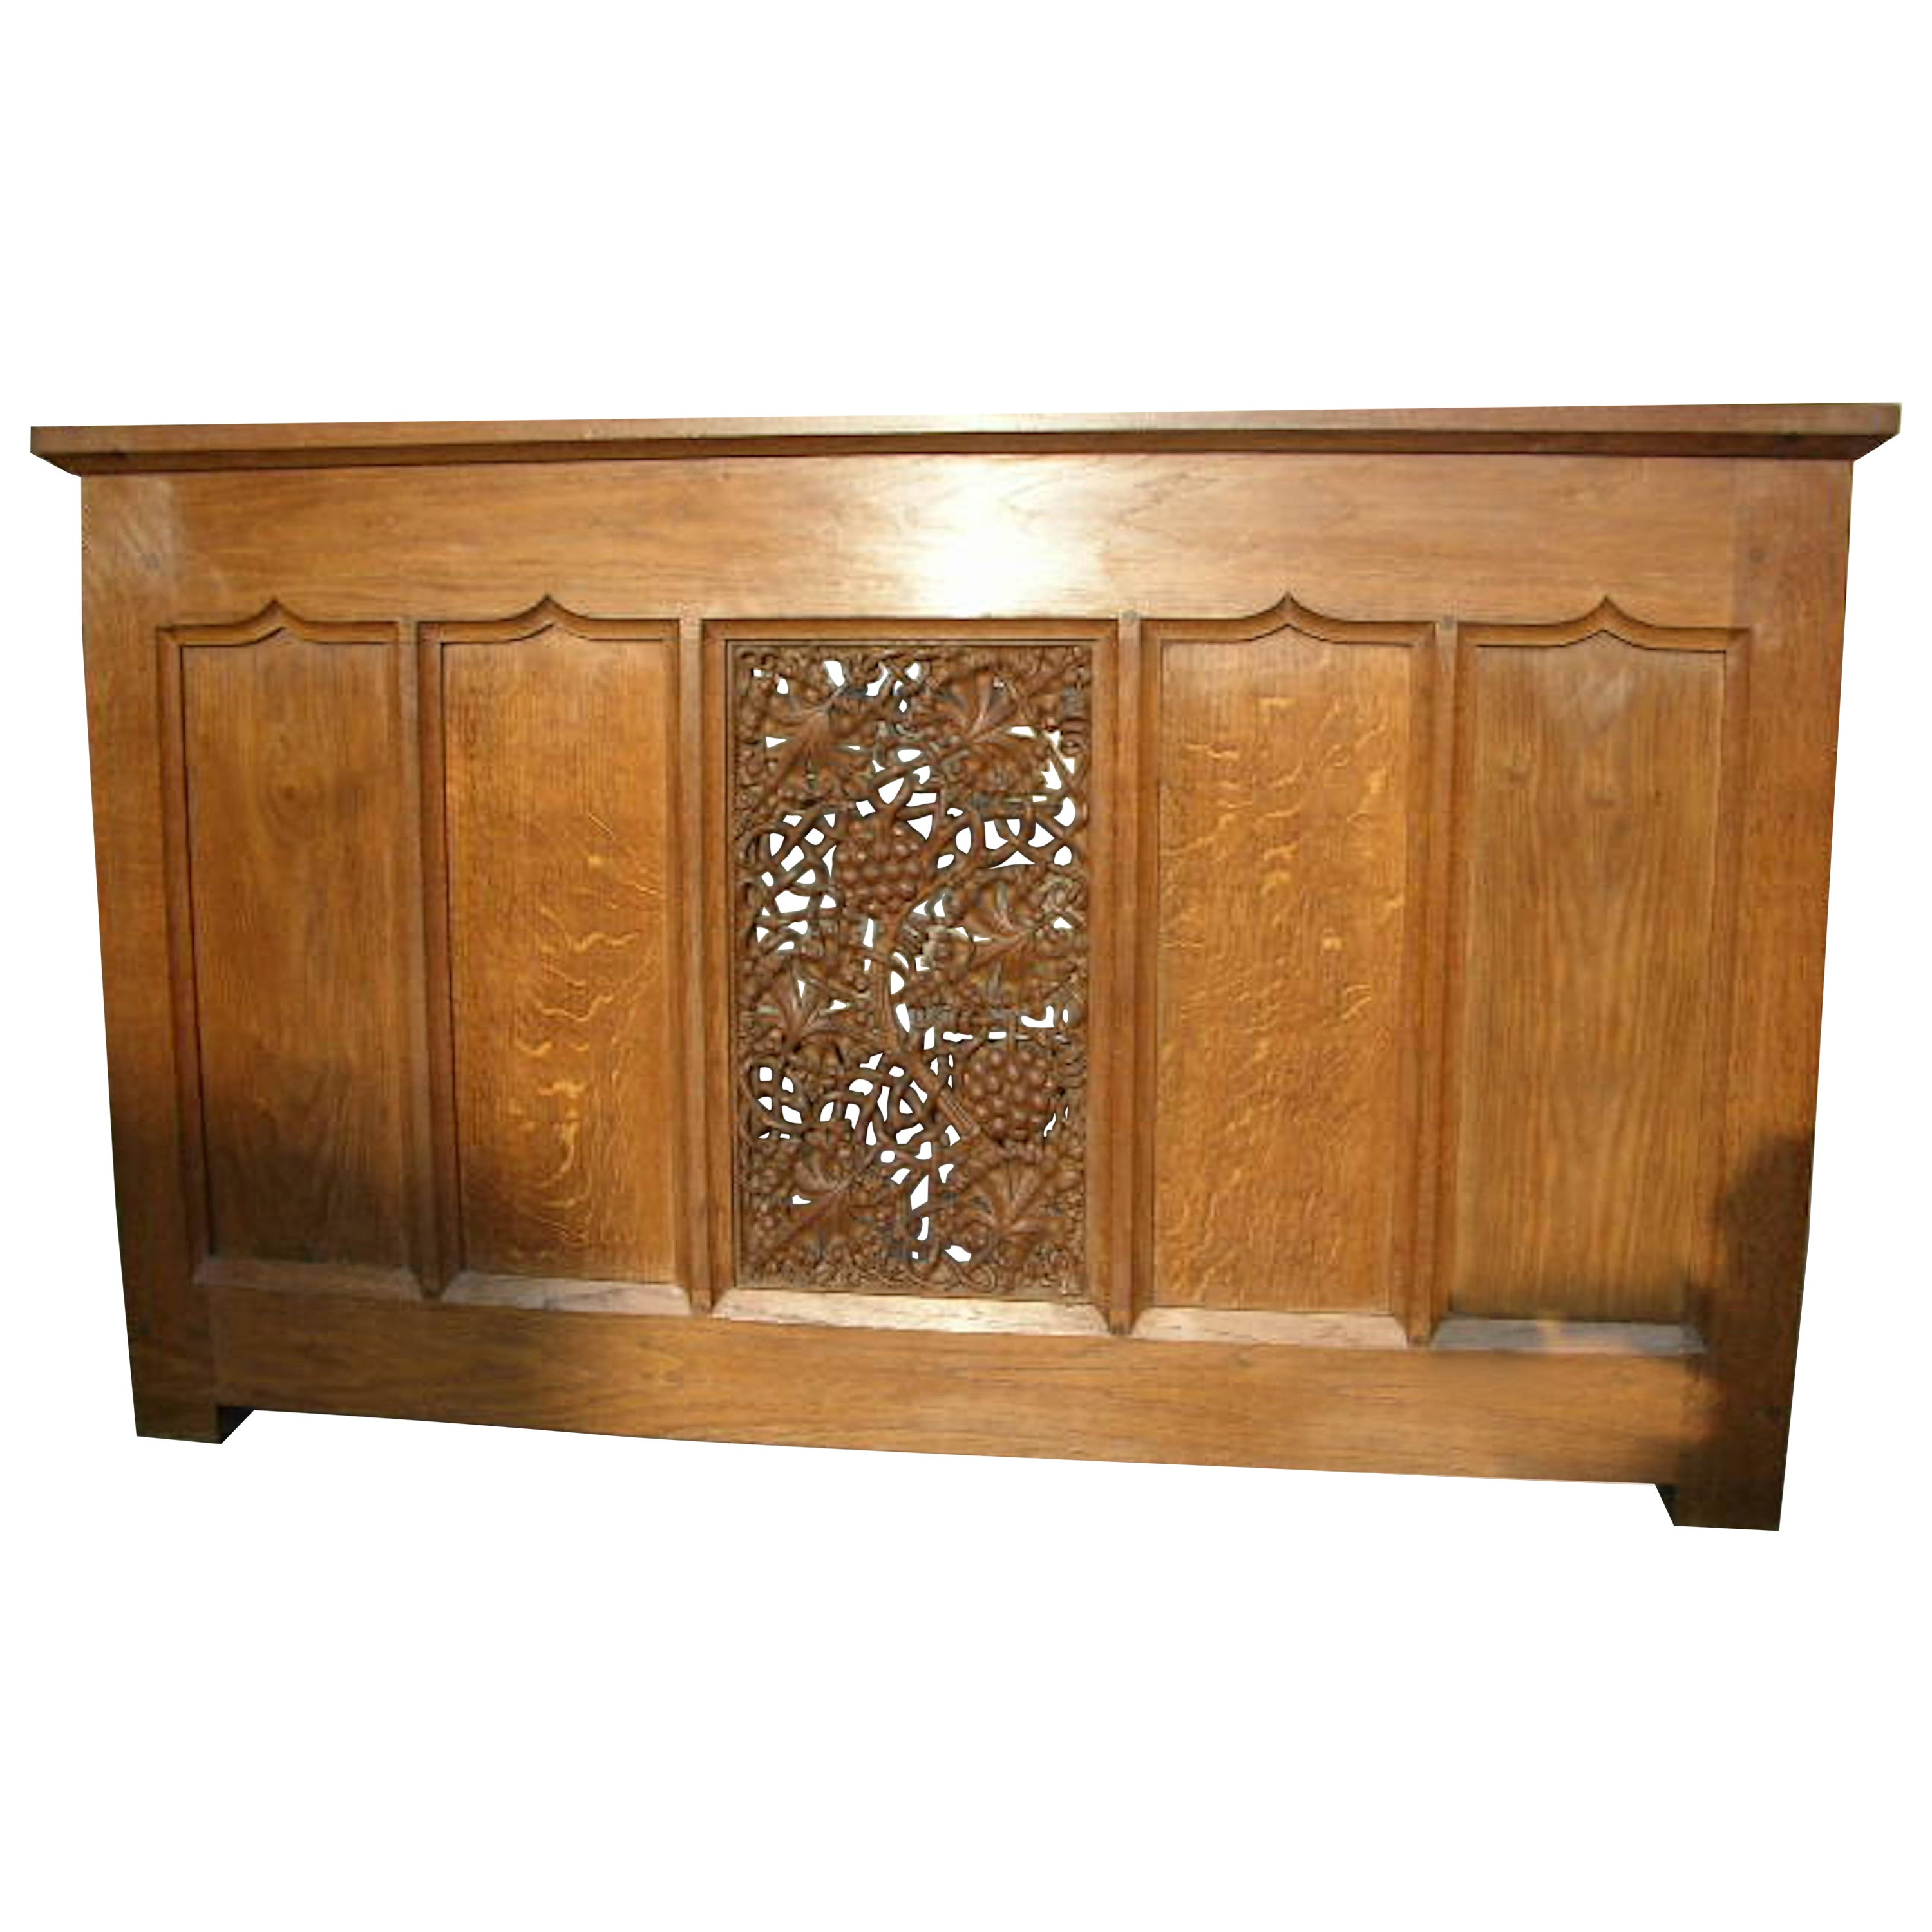 Arts & Crafts Oak Server Alta Table with a Finely Carved Centre Panel of Vines